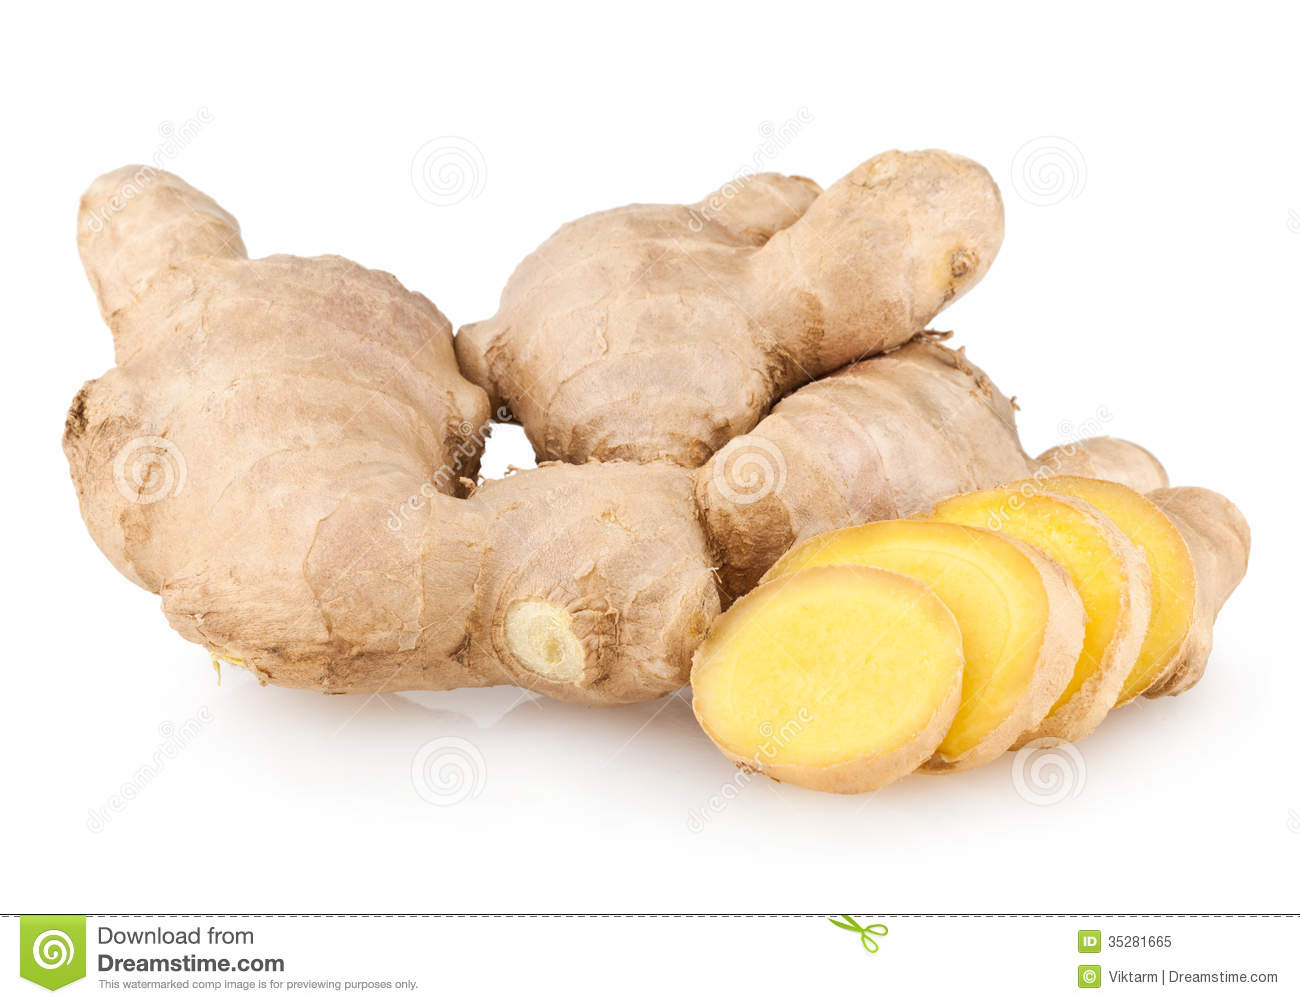 how to cut up ginger root